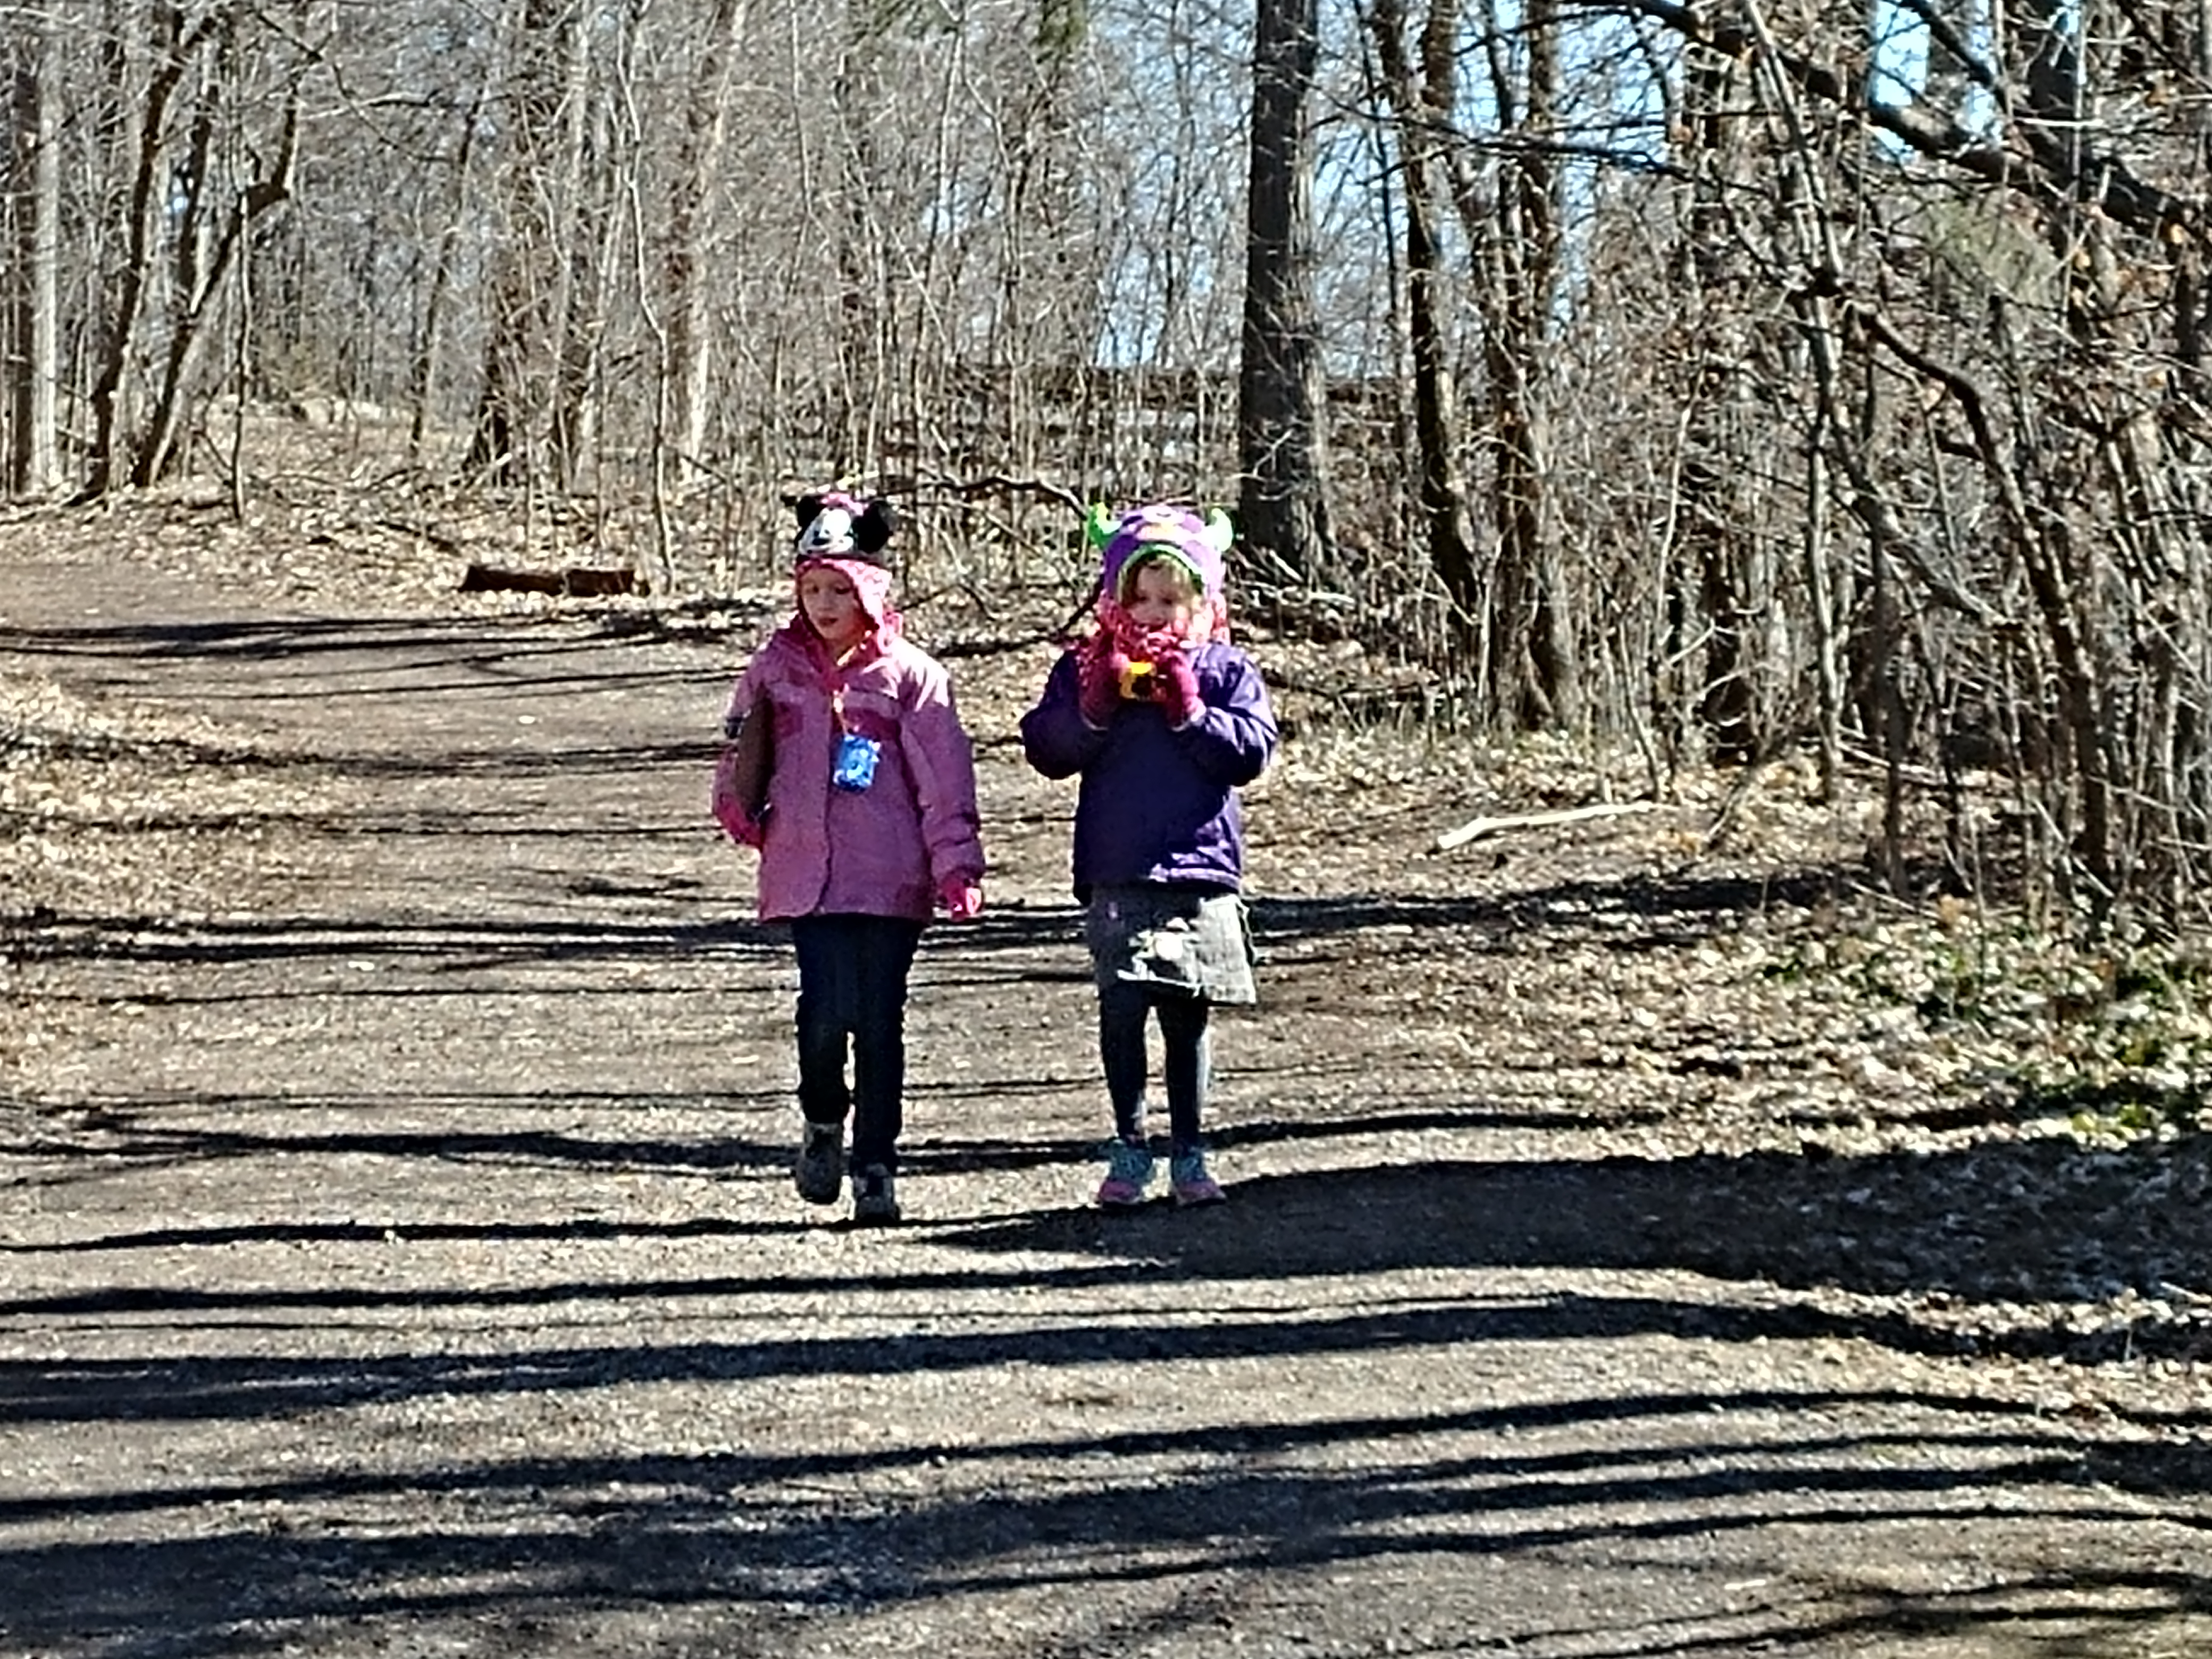 It's spring! Time to get outside and go on a spring scavenger hunt!